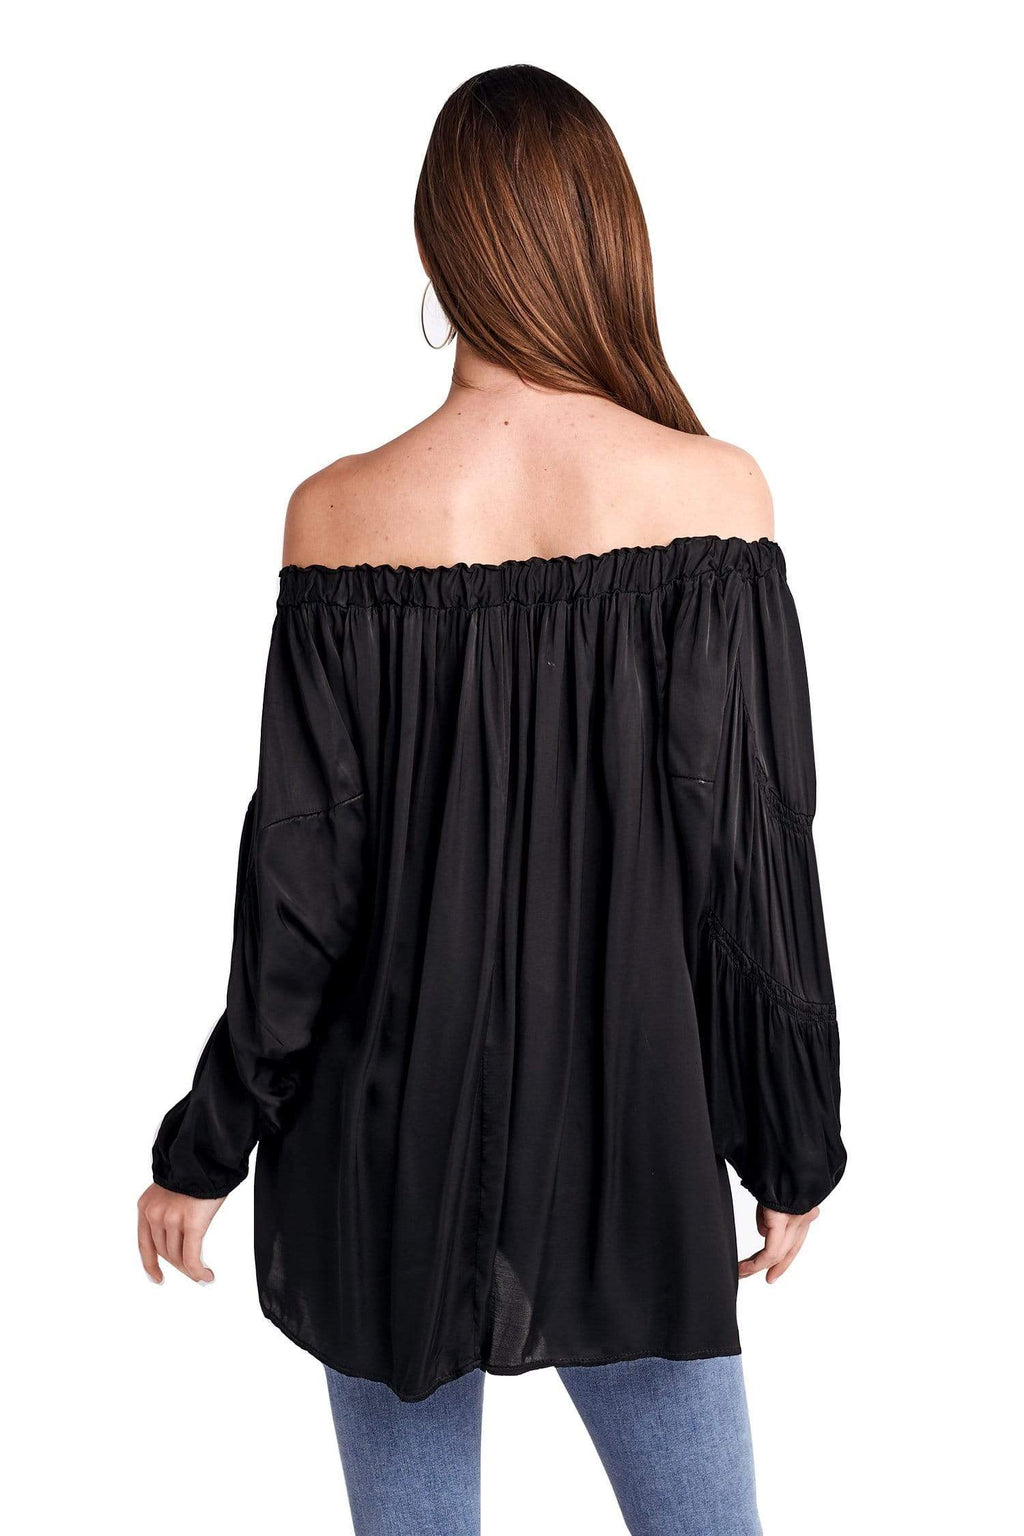 shop-sofia Off Shoulder Black Top Sofia Collections Italian Silk Linen Satin